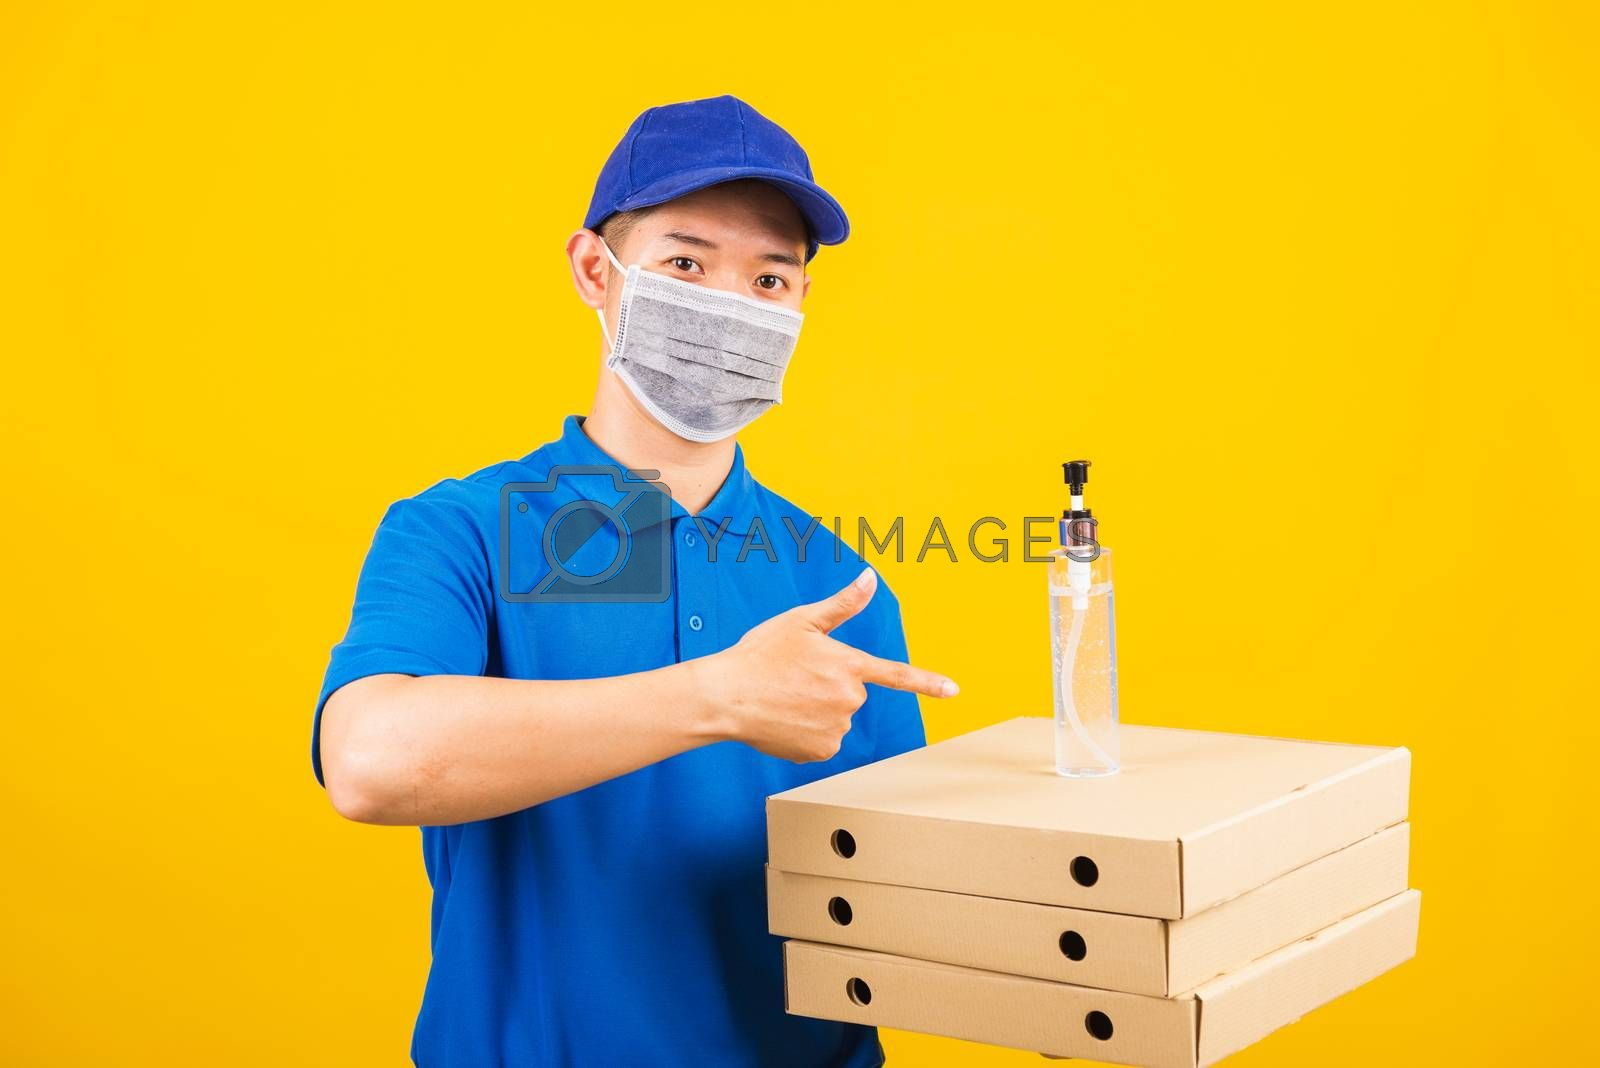 Asian young handsome delivery man wearing face mask protective germ virus holding boxes on hand and point alcohol sanitizing gel, studio shot isolated yellow background, outbreak coronavirus COVID-19